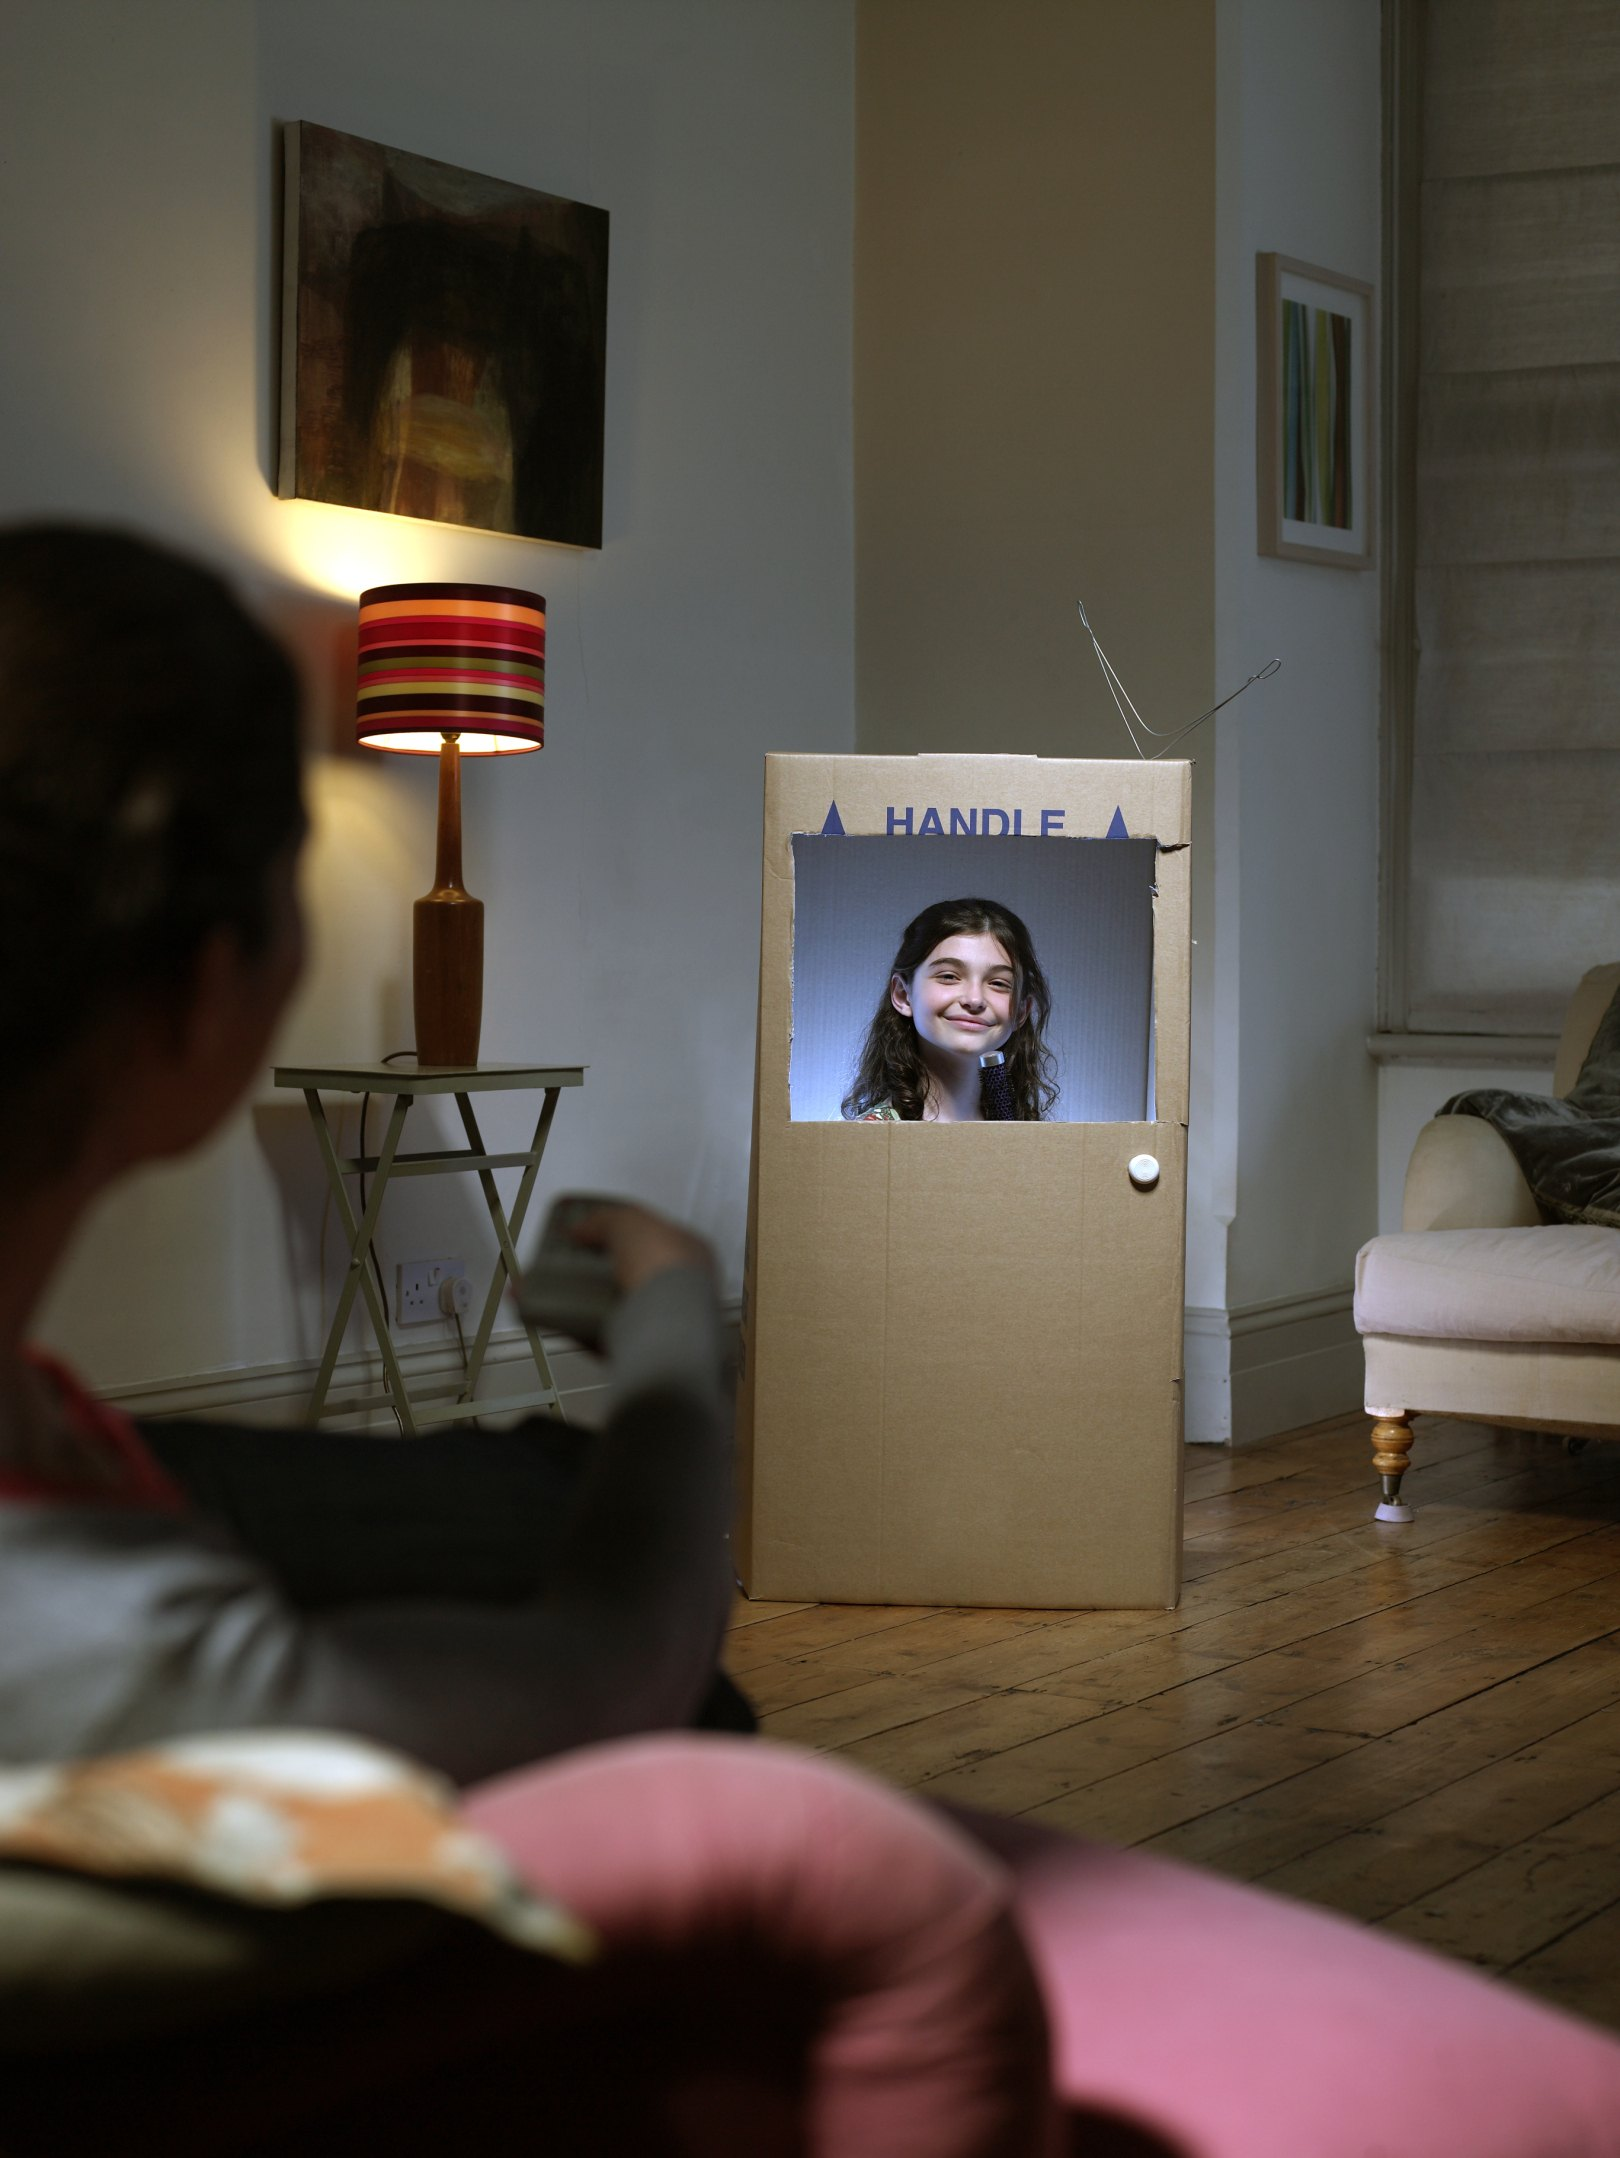 How To Make A Small Tv Out Of Cardboard